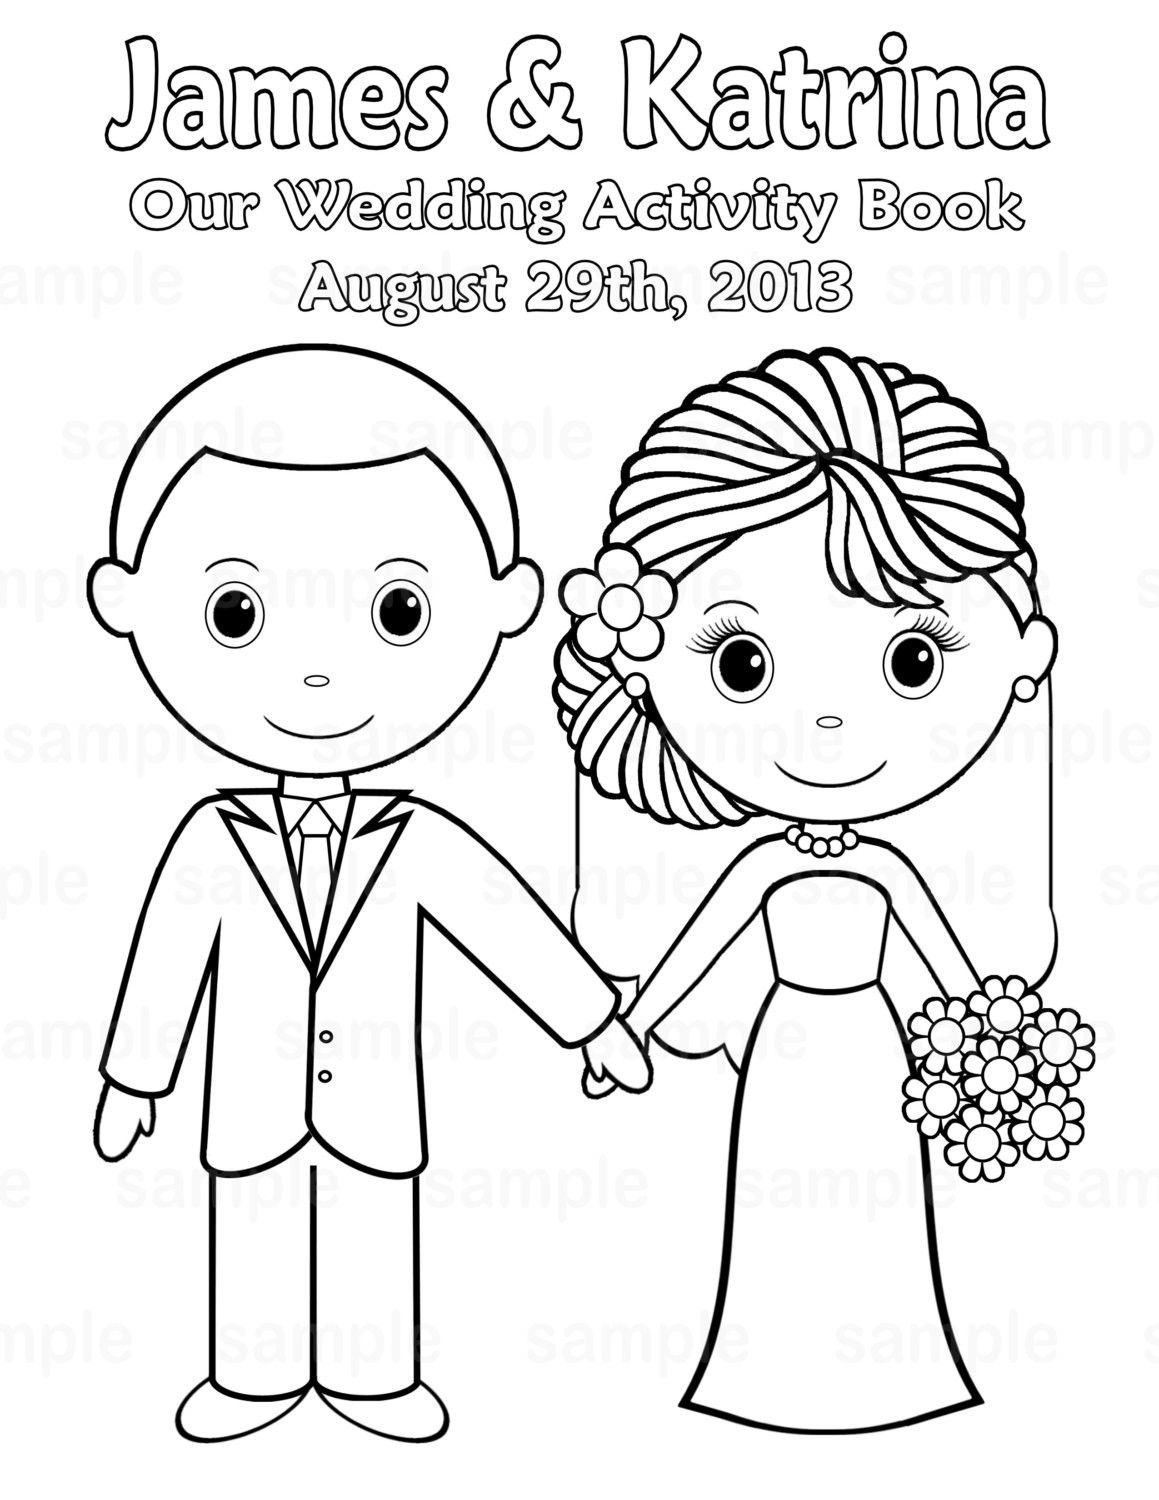 Mickey and Minnie Wedding Coloring Pages - Get Coloring Pages